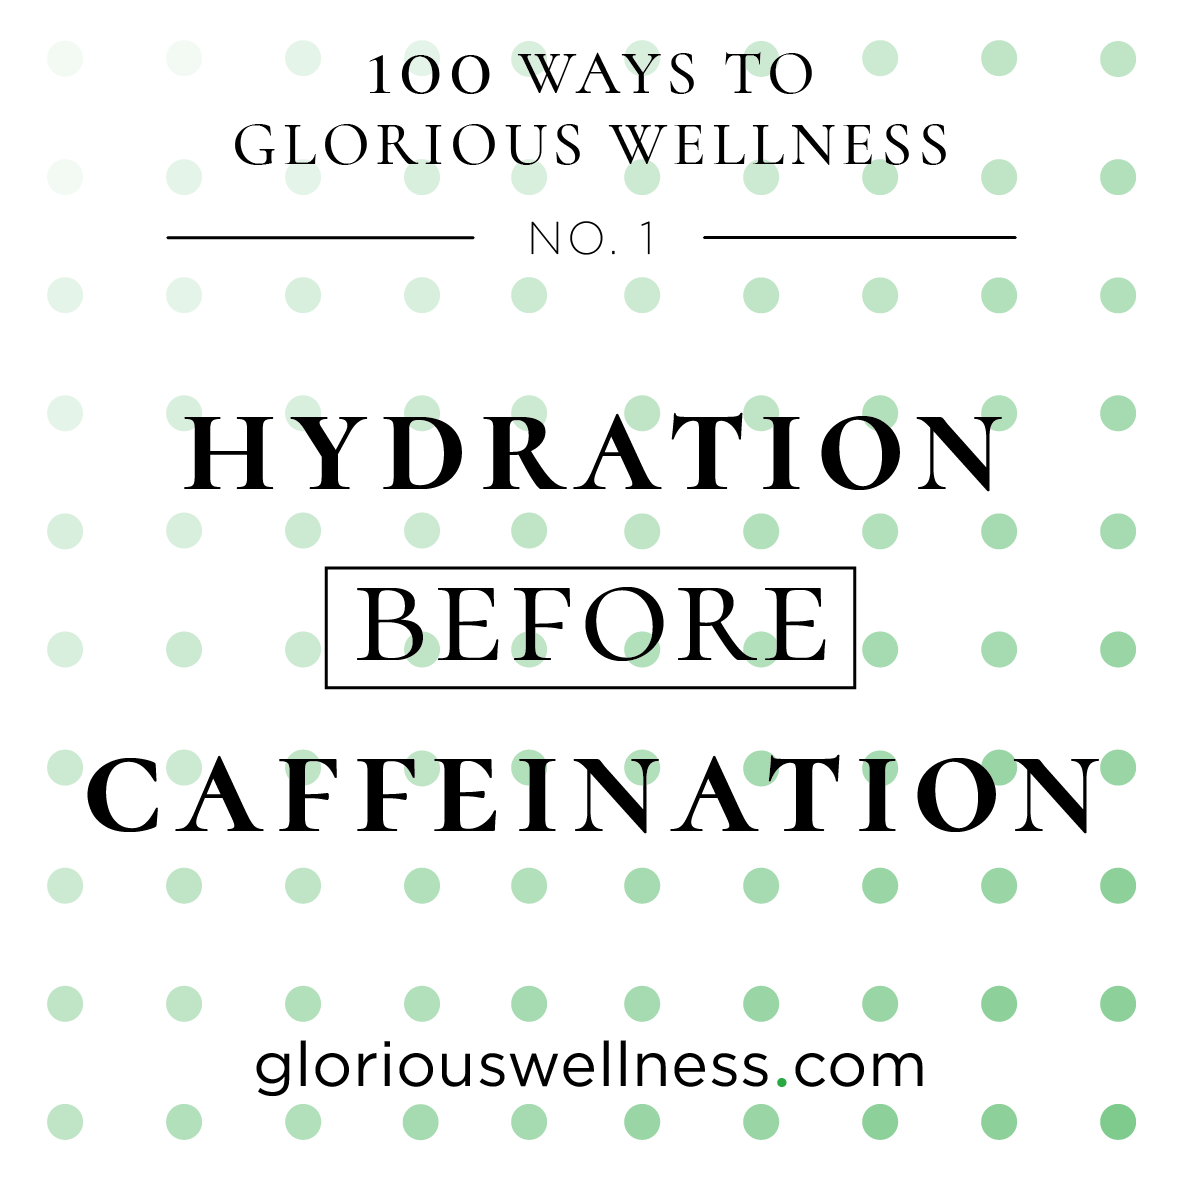 No. 1 - Hydration Before Caffeination